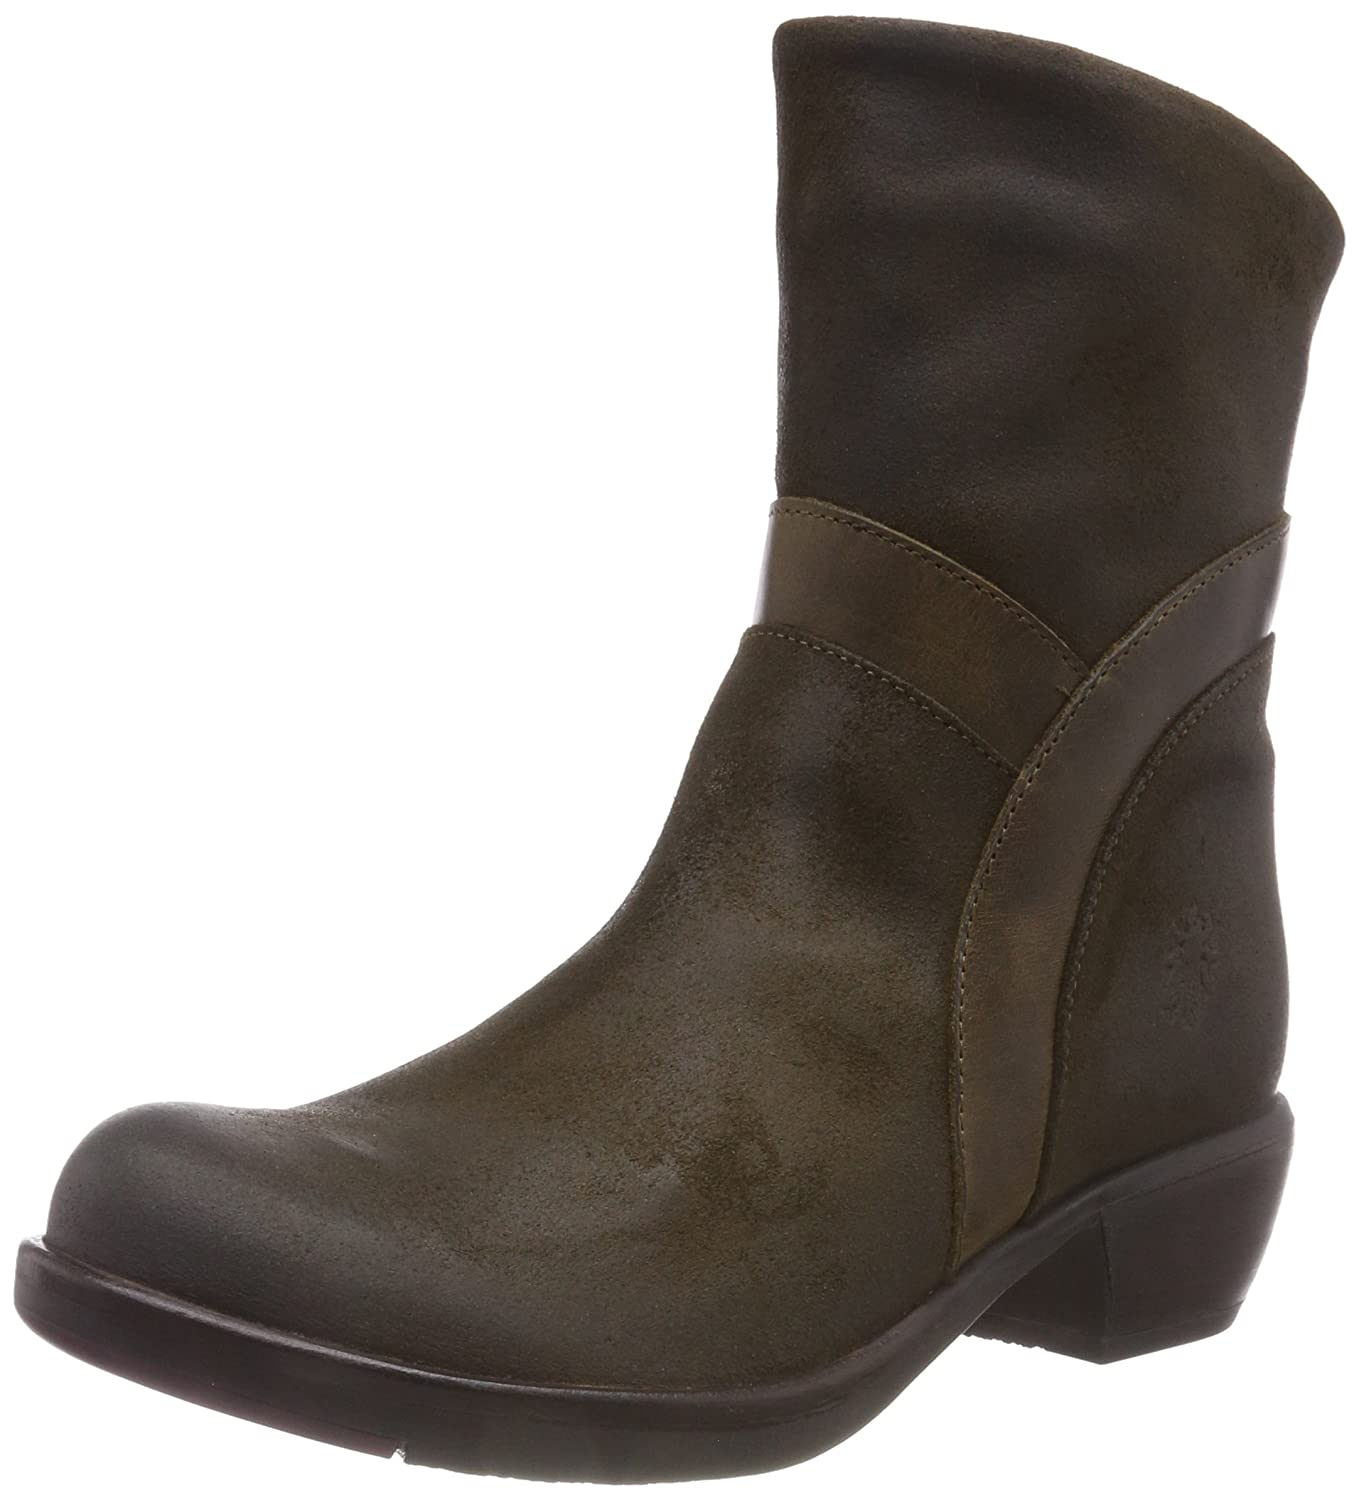 Fly London Damen Mobu383fly Mobu383fly Mobu383fly Kurzschaft Stiefel 69fee8